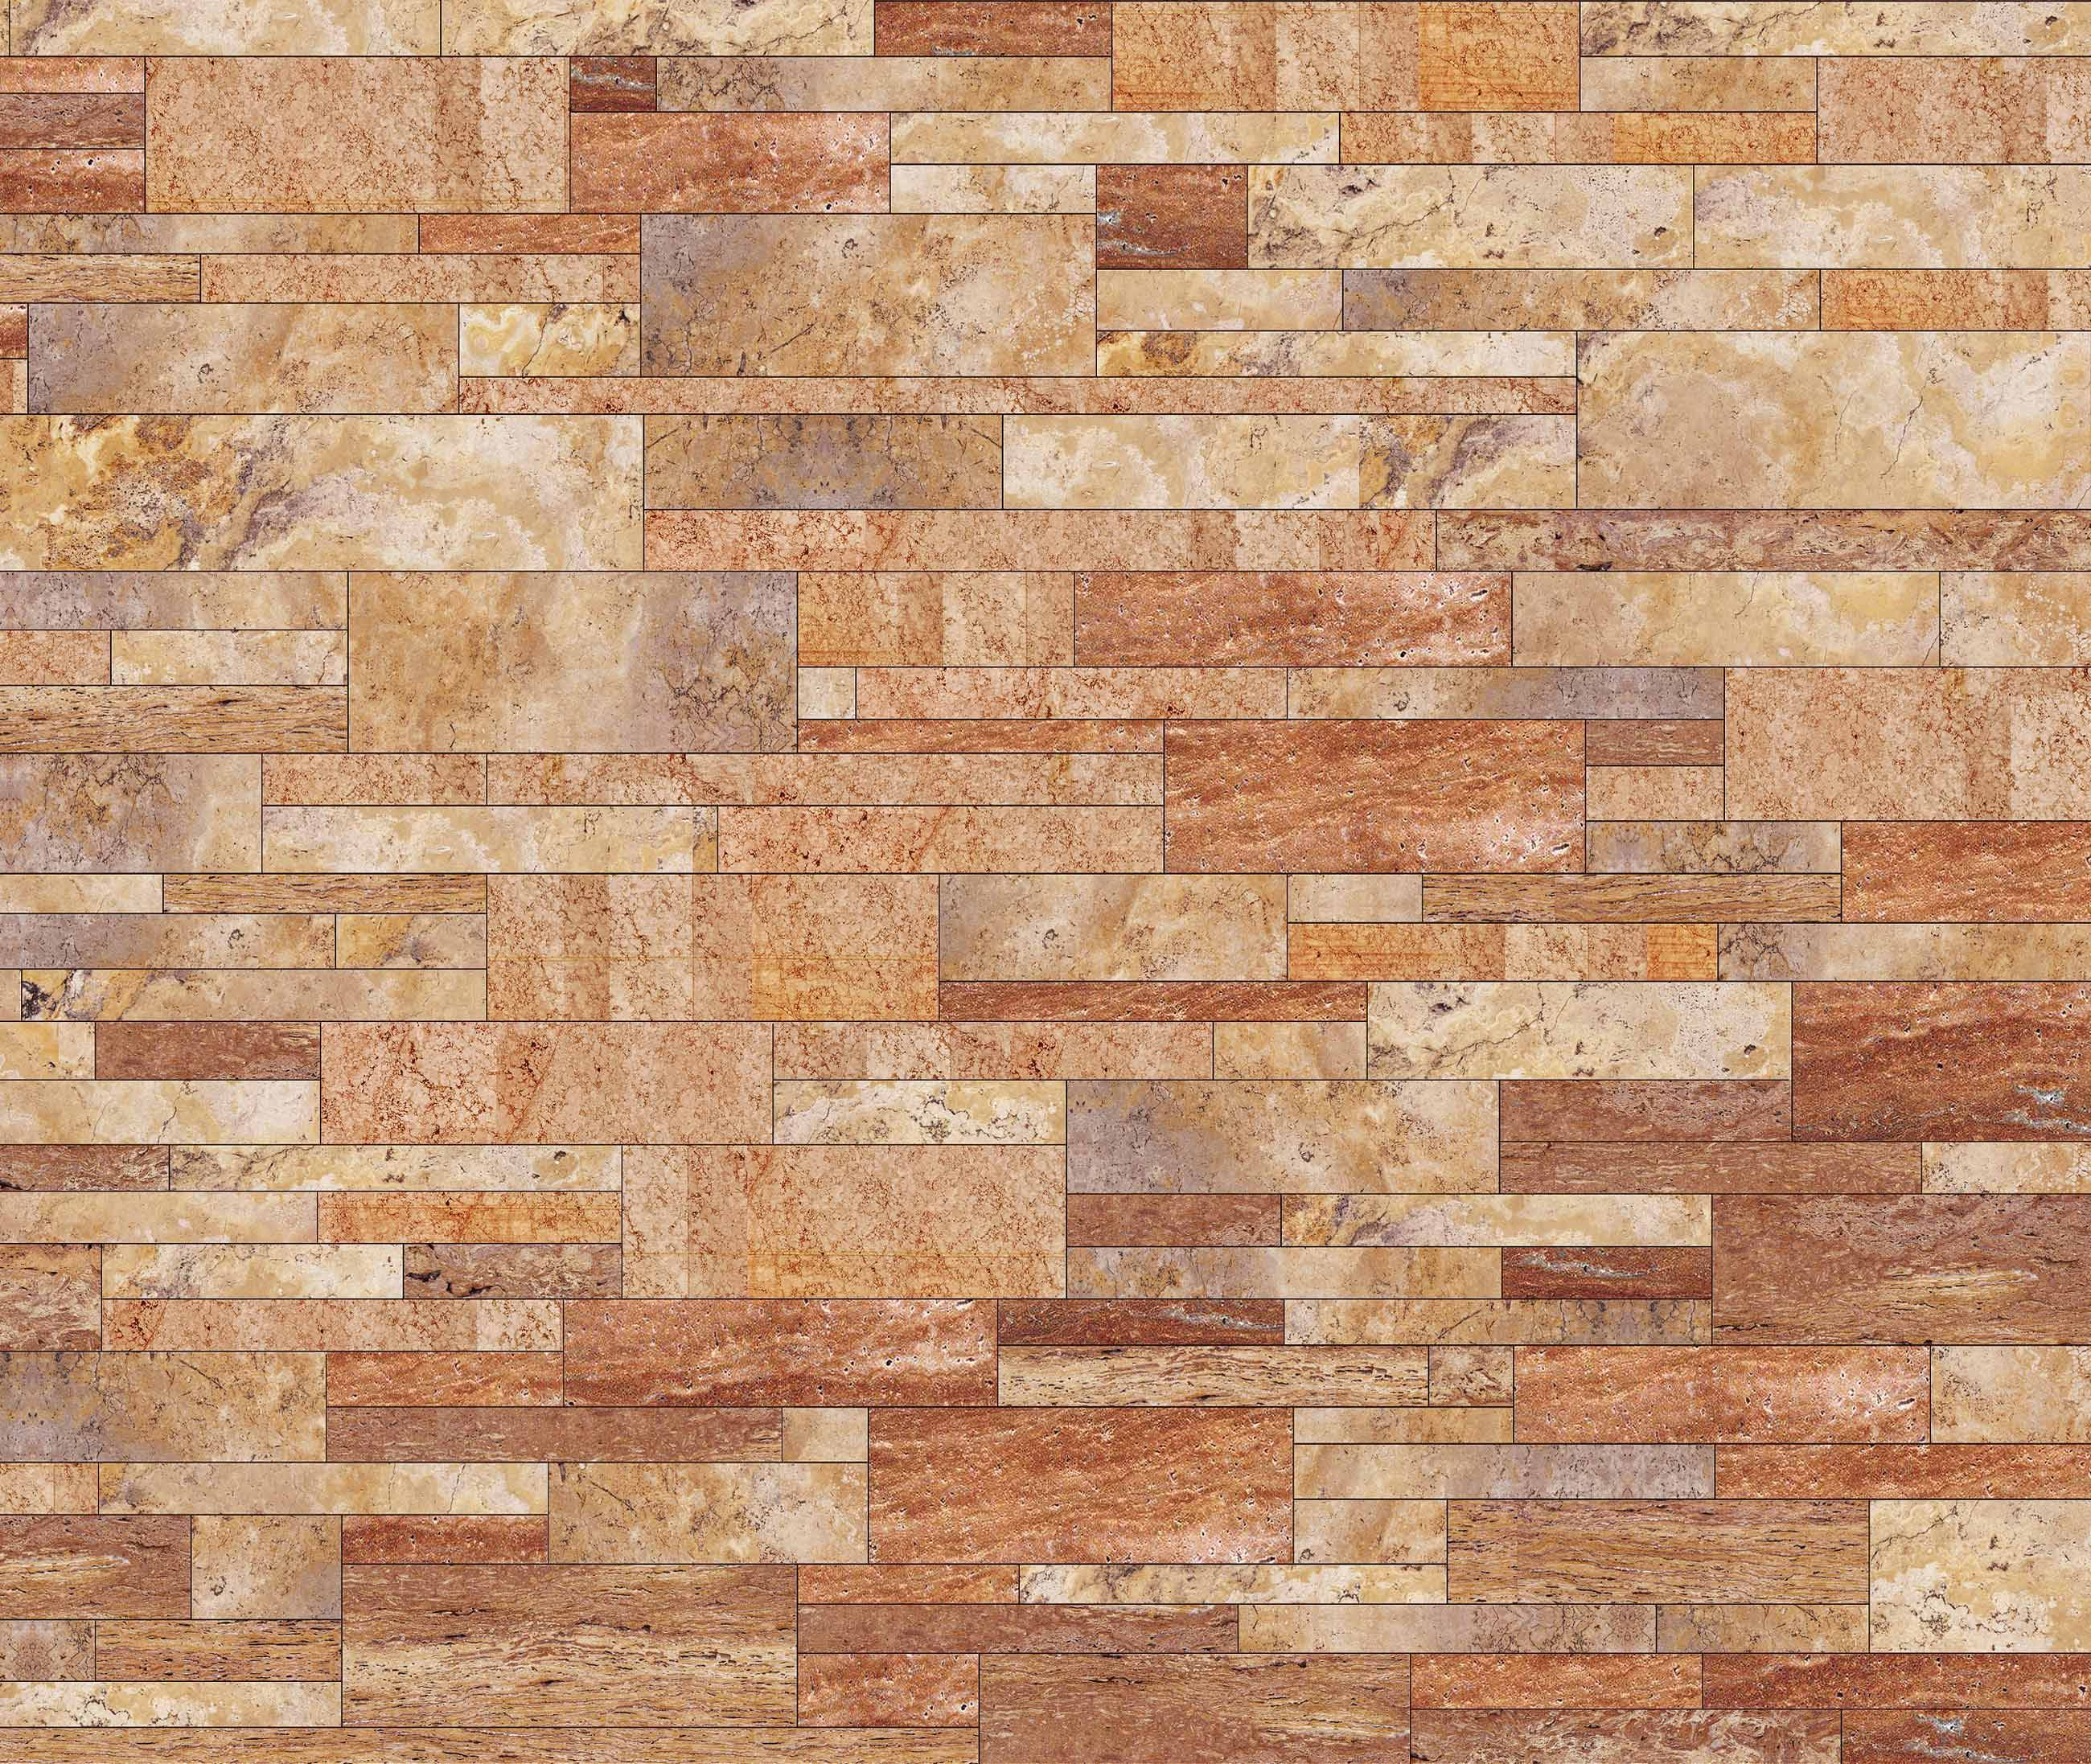 Background_wood_wall